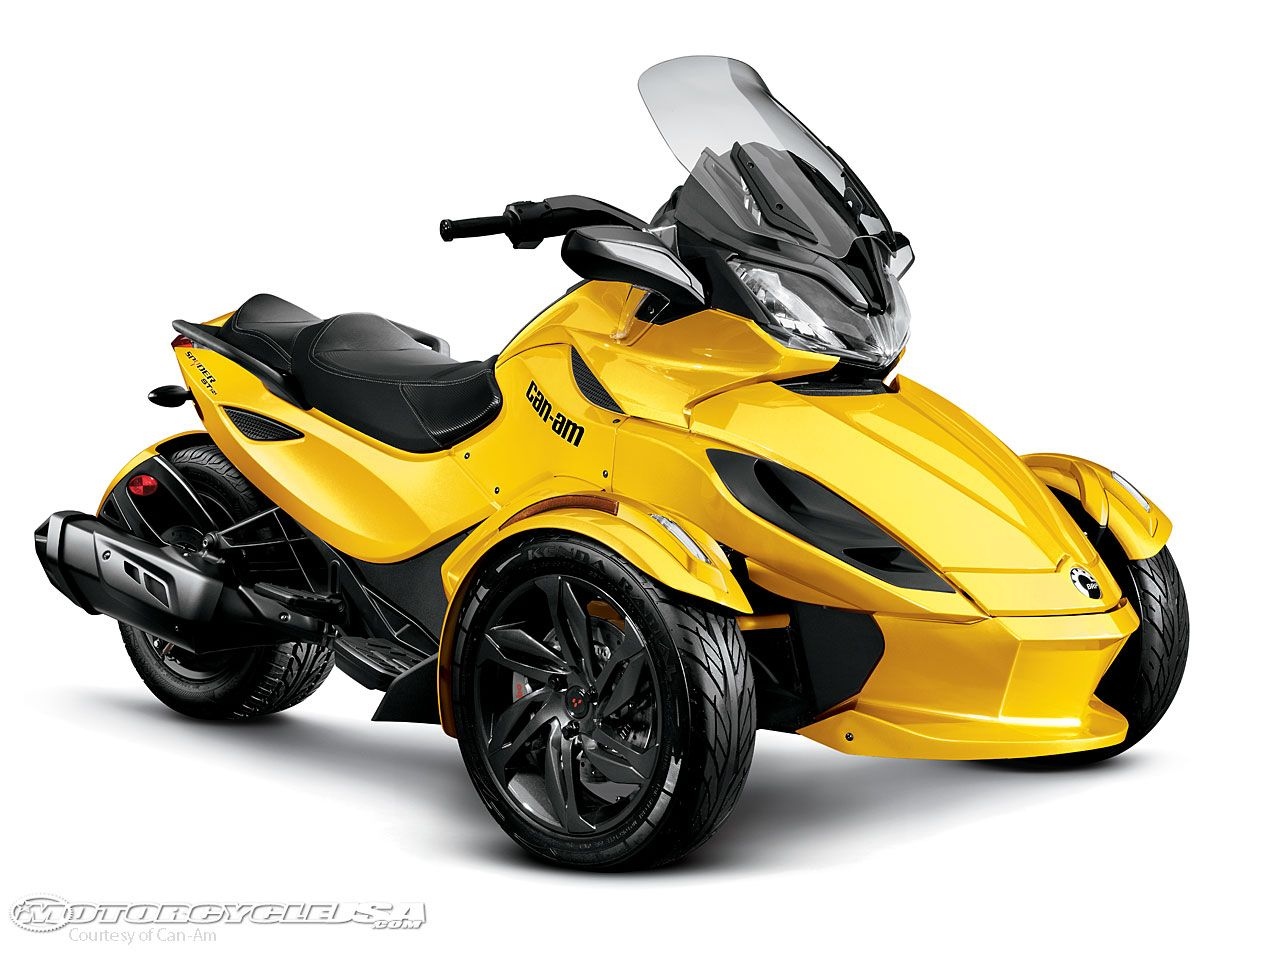 Moto bike modification can am spider motorcycle offers new sensation